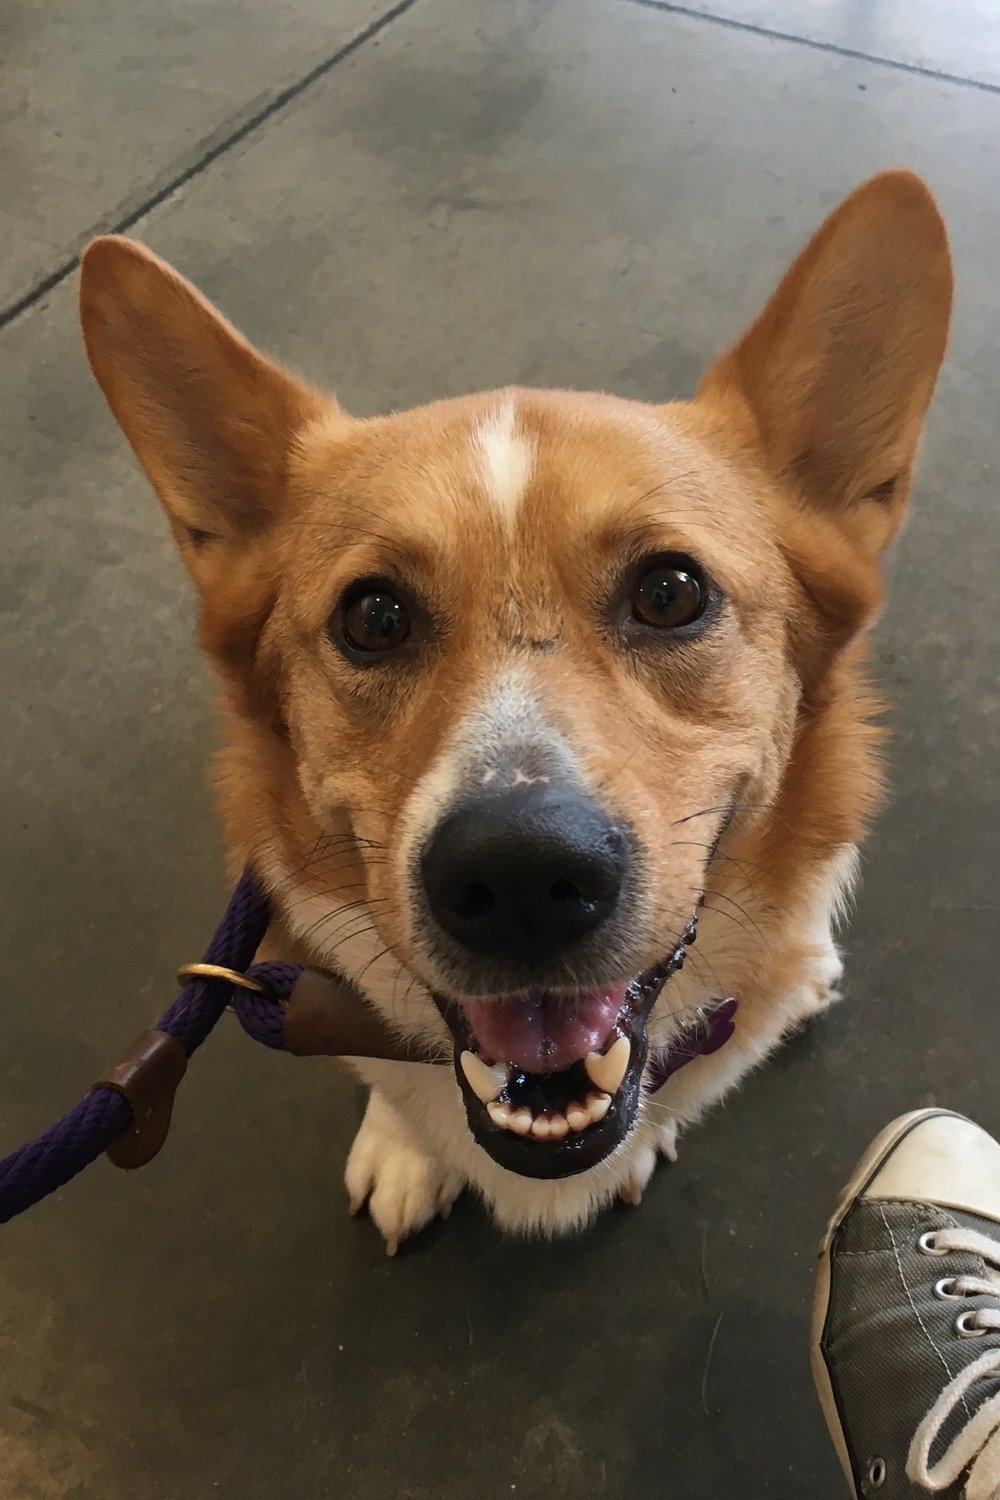 INDY   (Bite History; has bite inhibition)  Male, 2 years old  Saved from death row at shelter. Owner surrender due to biting and food aggression; bit first family while herding children, bit second family while being hand fed. Working on food aggression with people. Working on guarding toys and food Working on basic obedience, leash manners, and courtesy/impulse control. Has destructive behavior. Crate and potty trained. Playful with toys and dogs of the right energy and temperament. Needs corgi saavy and experienced owner. Not good for first time owner(s). Not good for households with children.